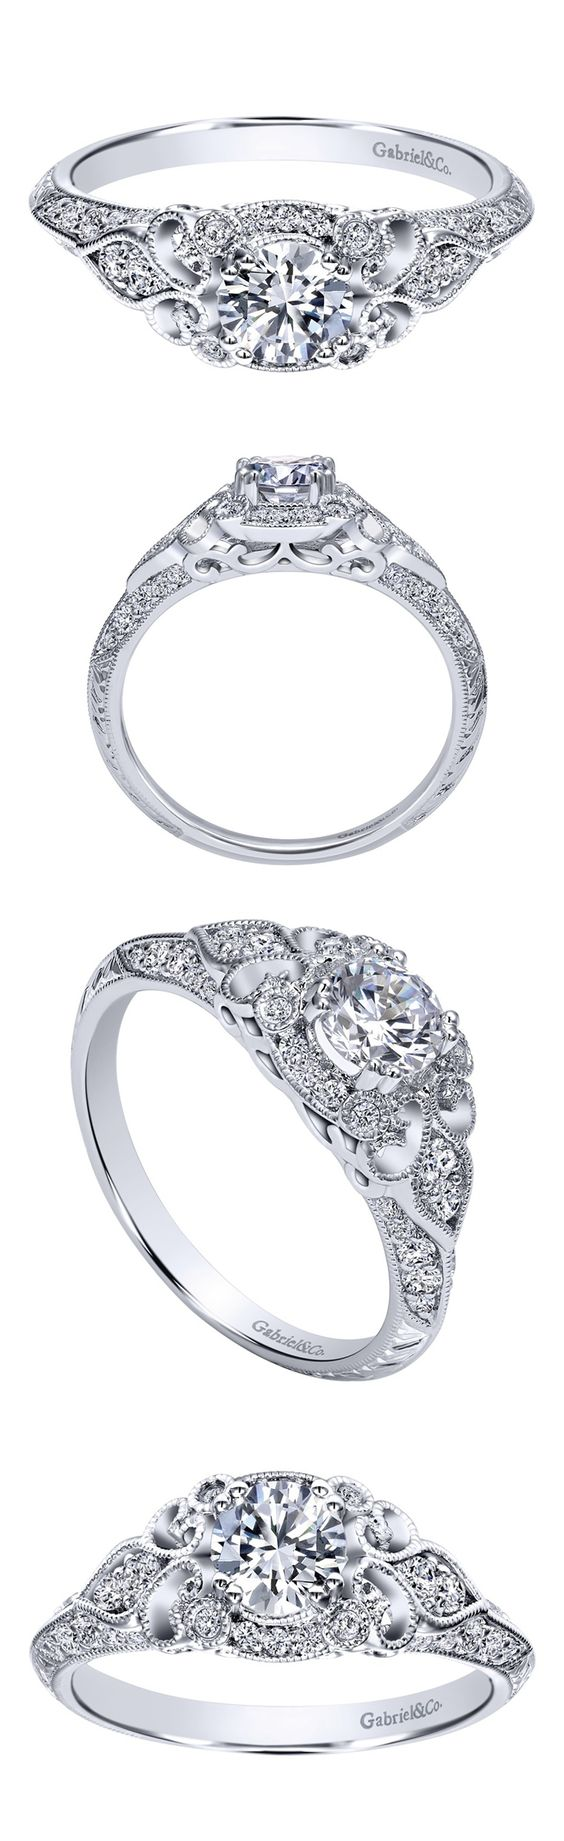 Looking for the perfect engagement ring to match with your vintage wedding? Check out this beautiful 14k White Gold Victorian Halo Engagement Ring by Gabriel & Co. For the classic woman in your life.